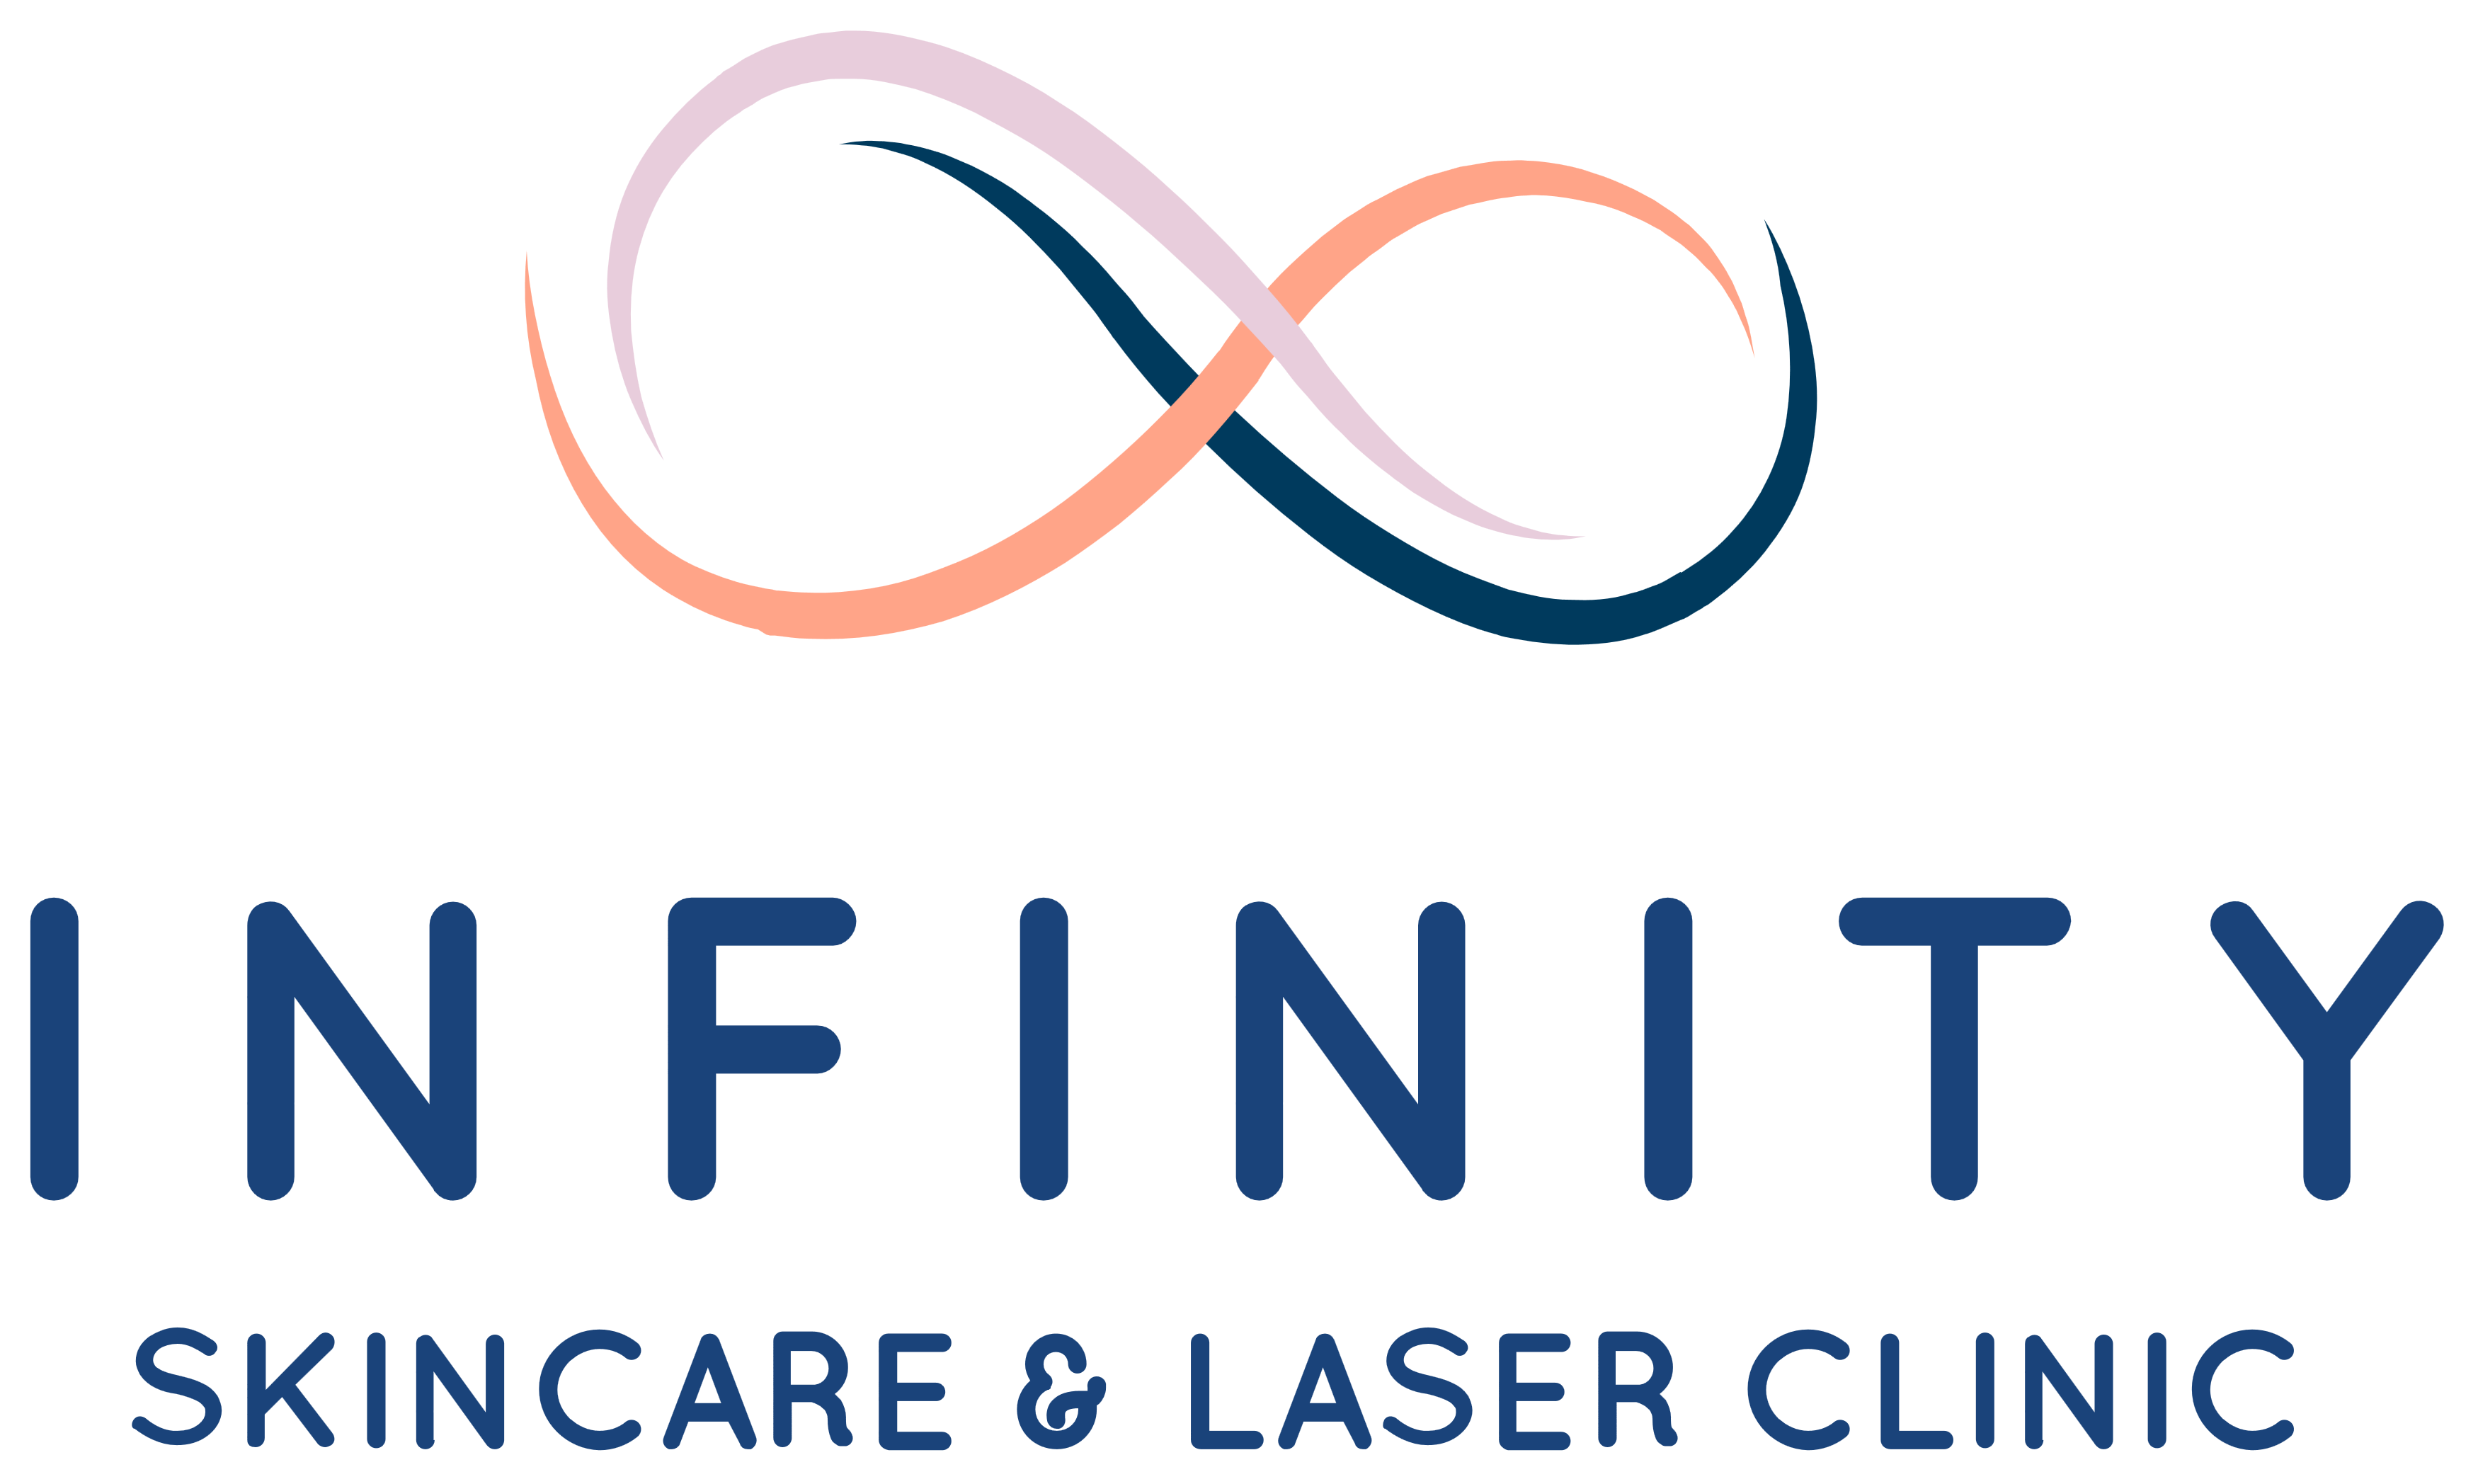 Infinity Skin Care Amp Laser Clinic Logos Download